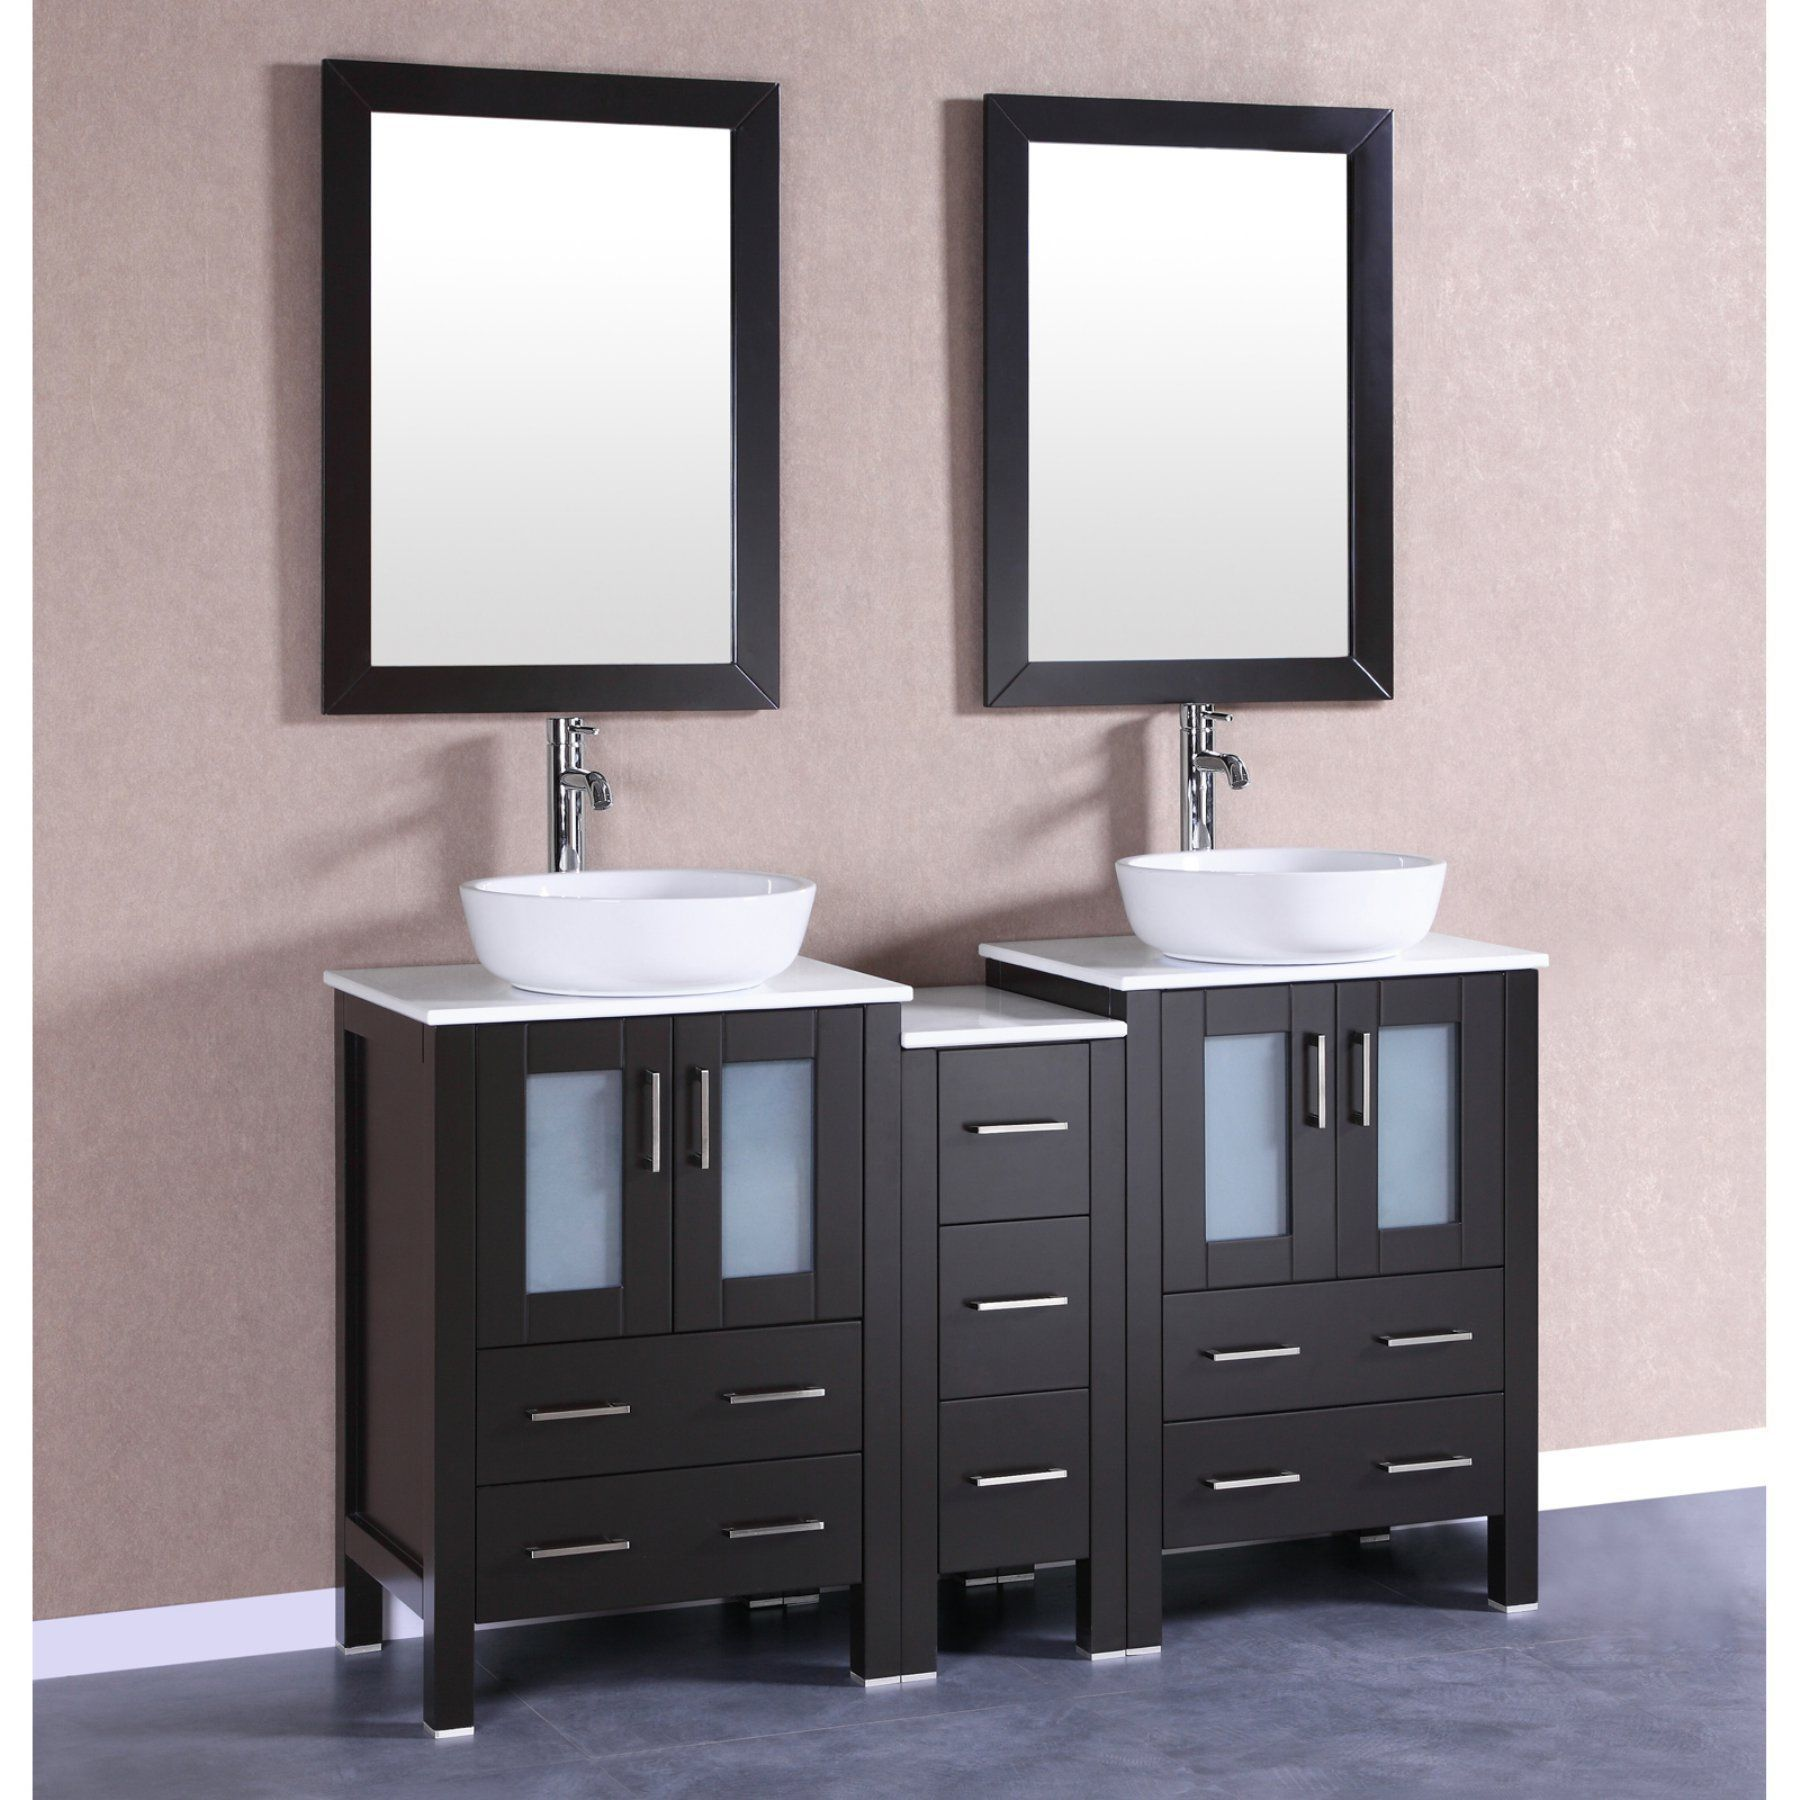 Bosconi Double Bathroom Vanity With Phoenix Stone Countertop